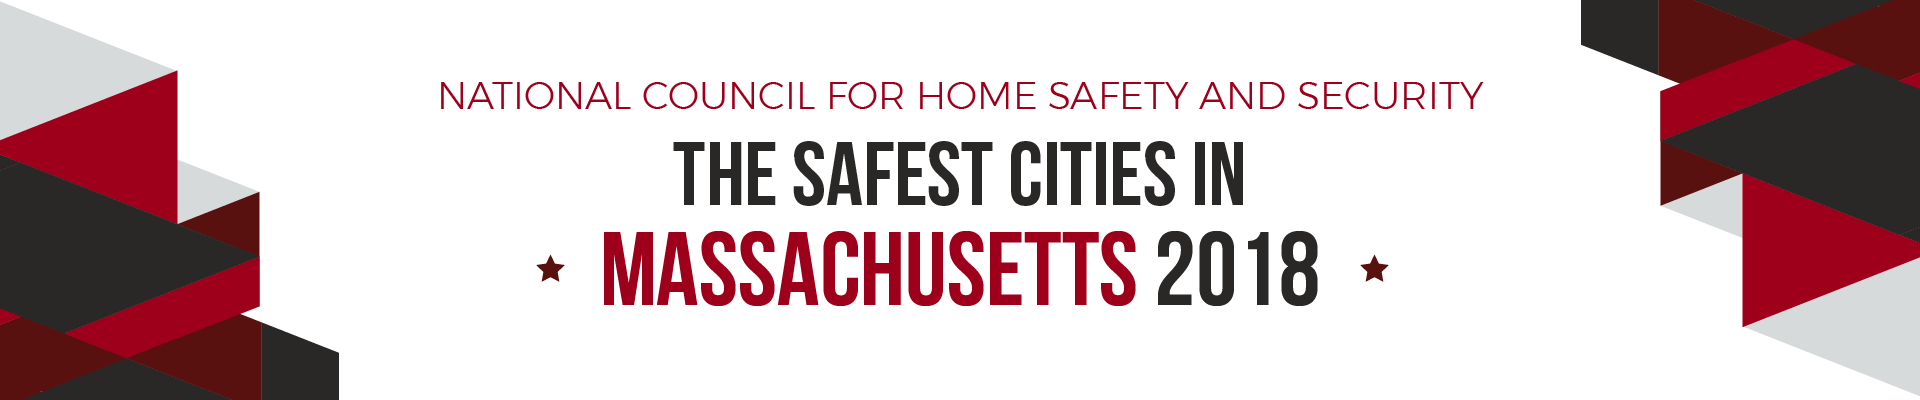 massachusetts safe cities 2018